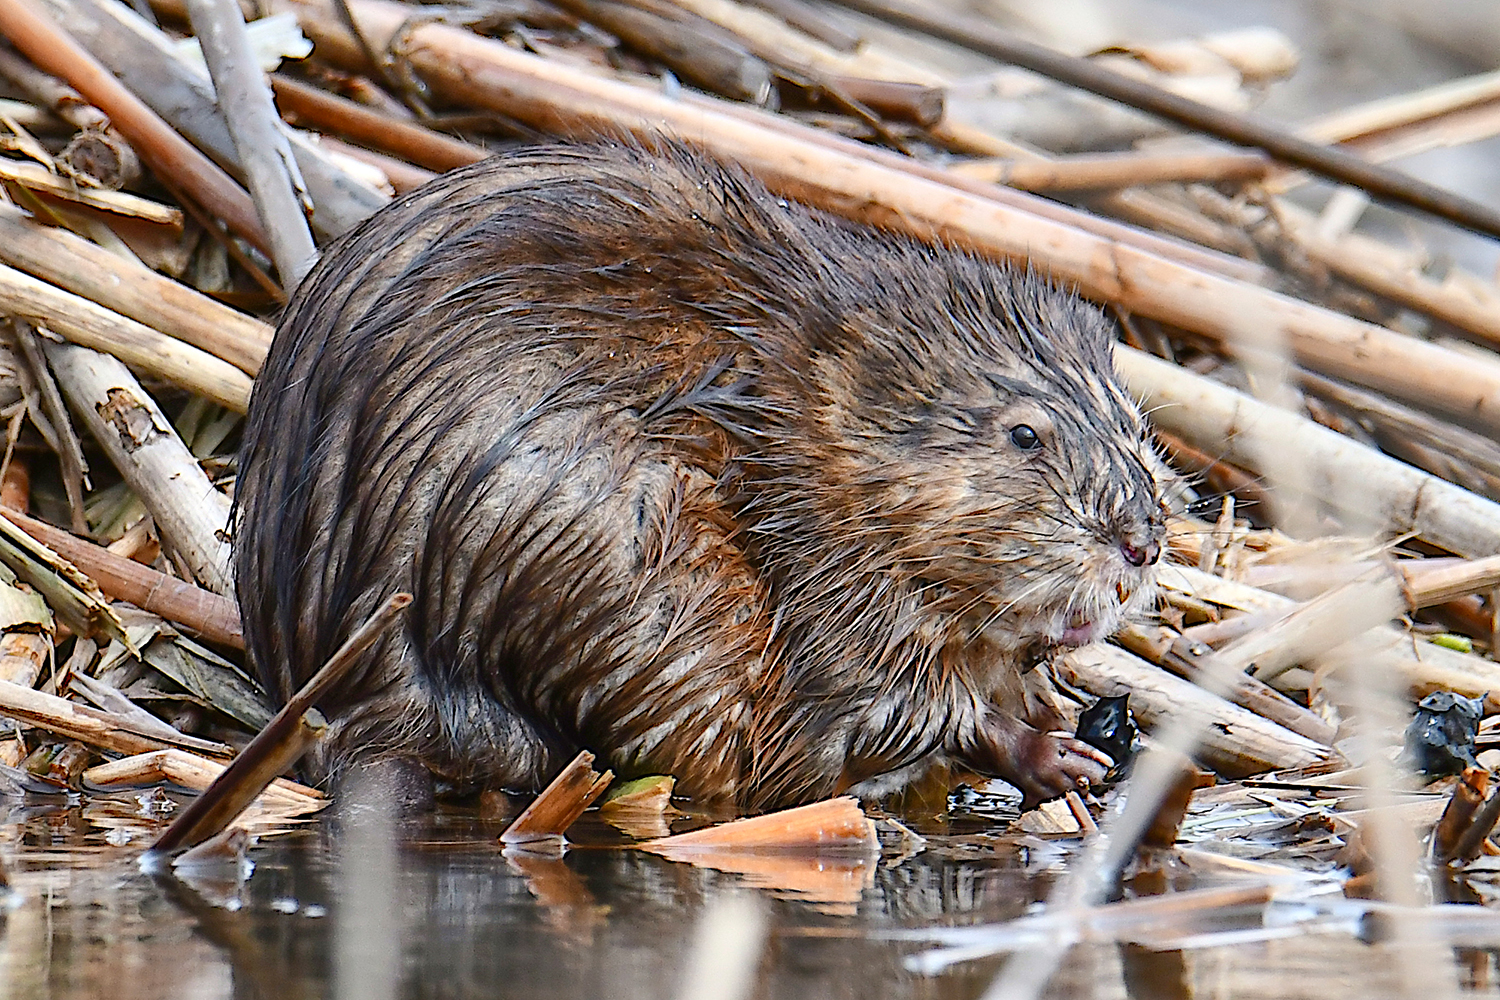 A Muskrat, common in the cattail marshes along the river, holding a water chestnut seed.  Michael Kalin